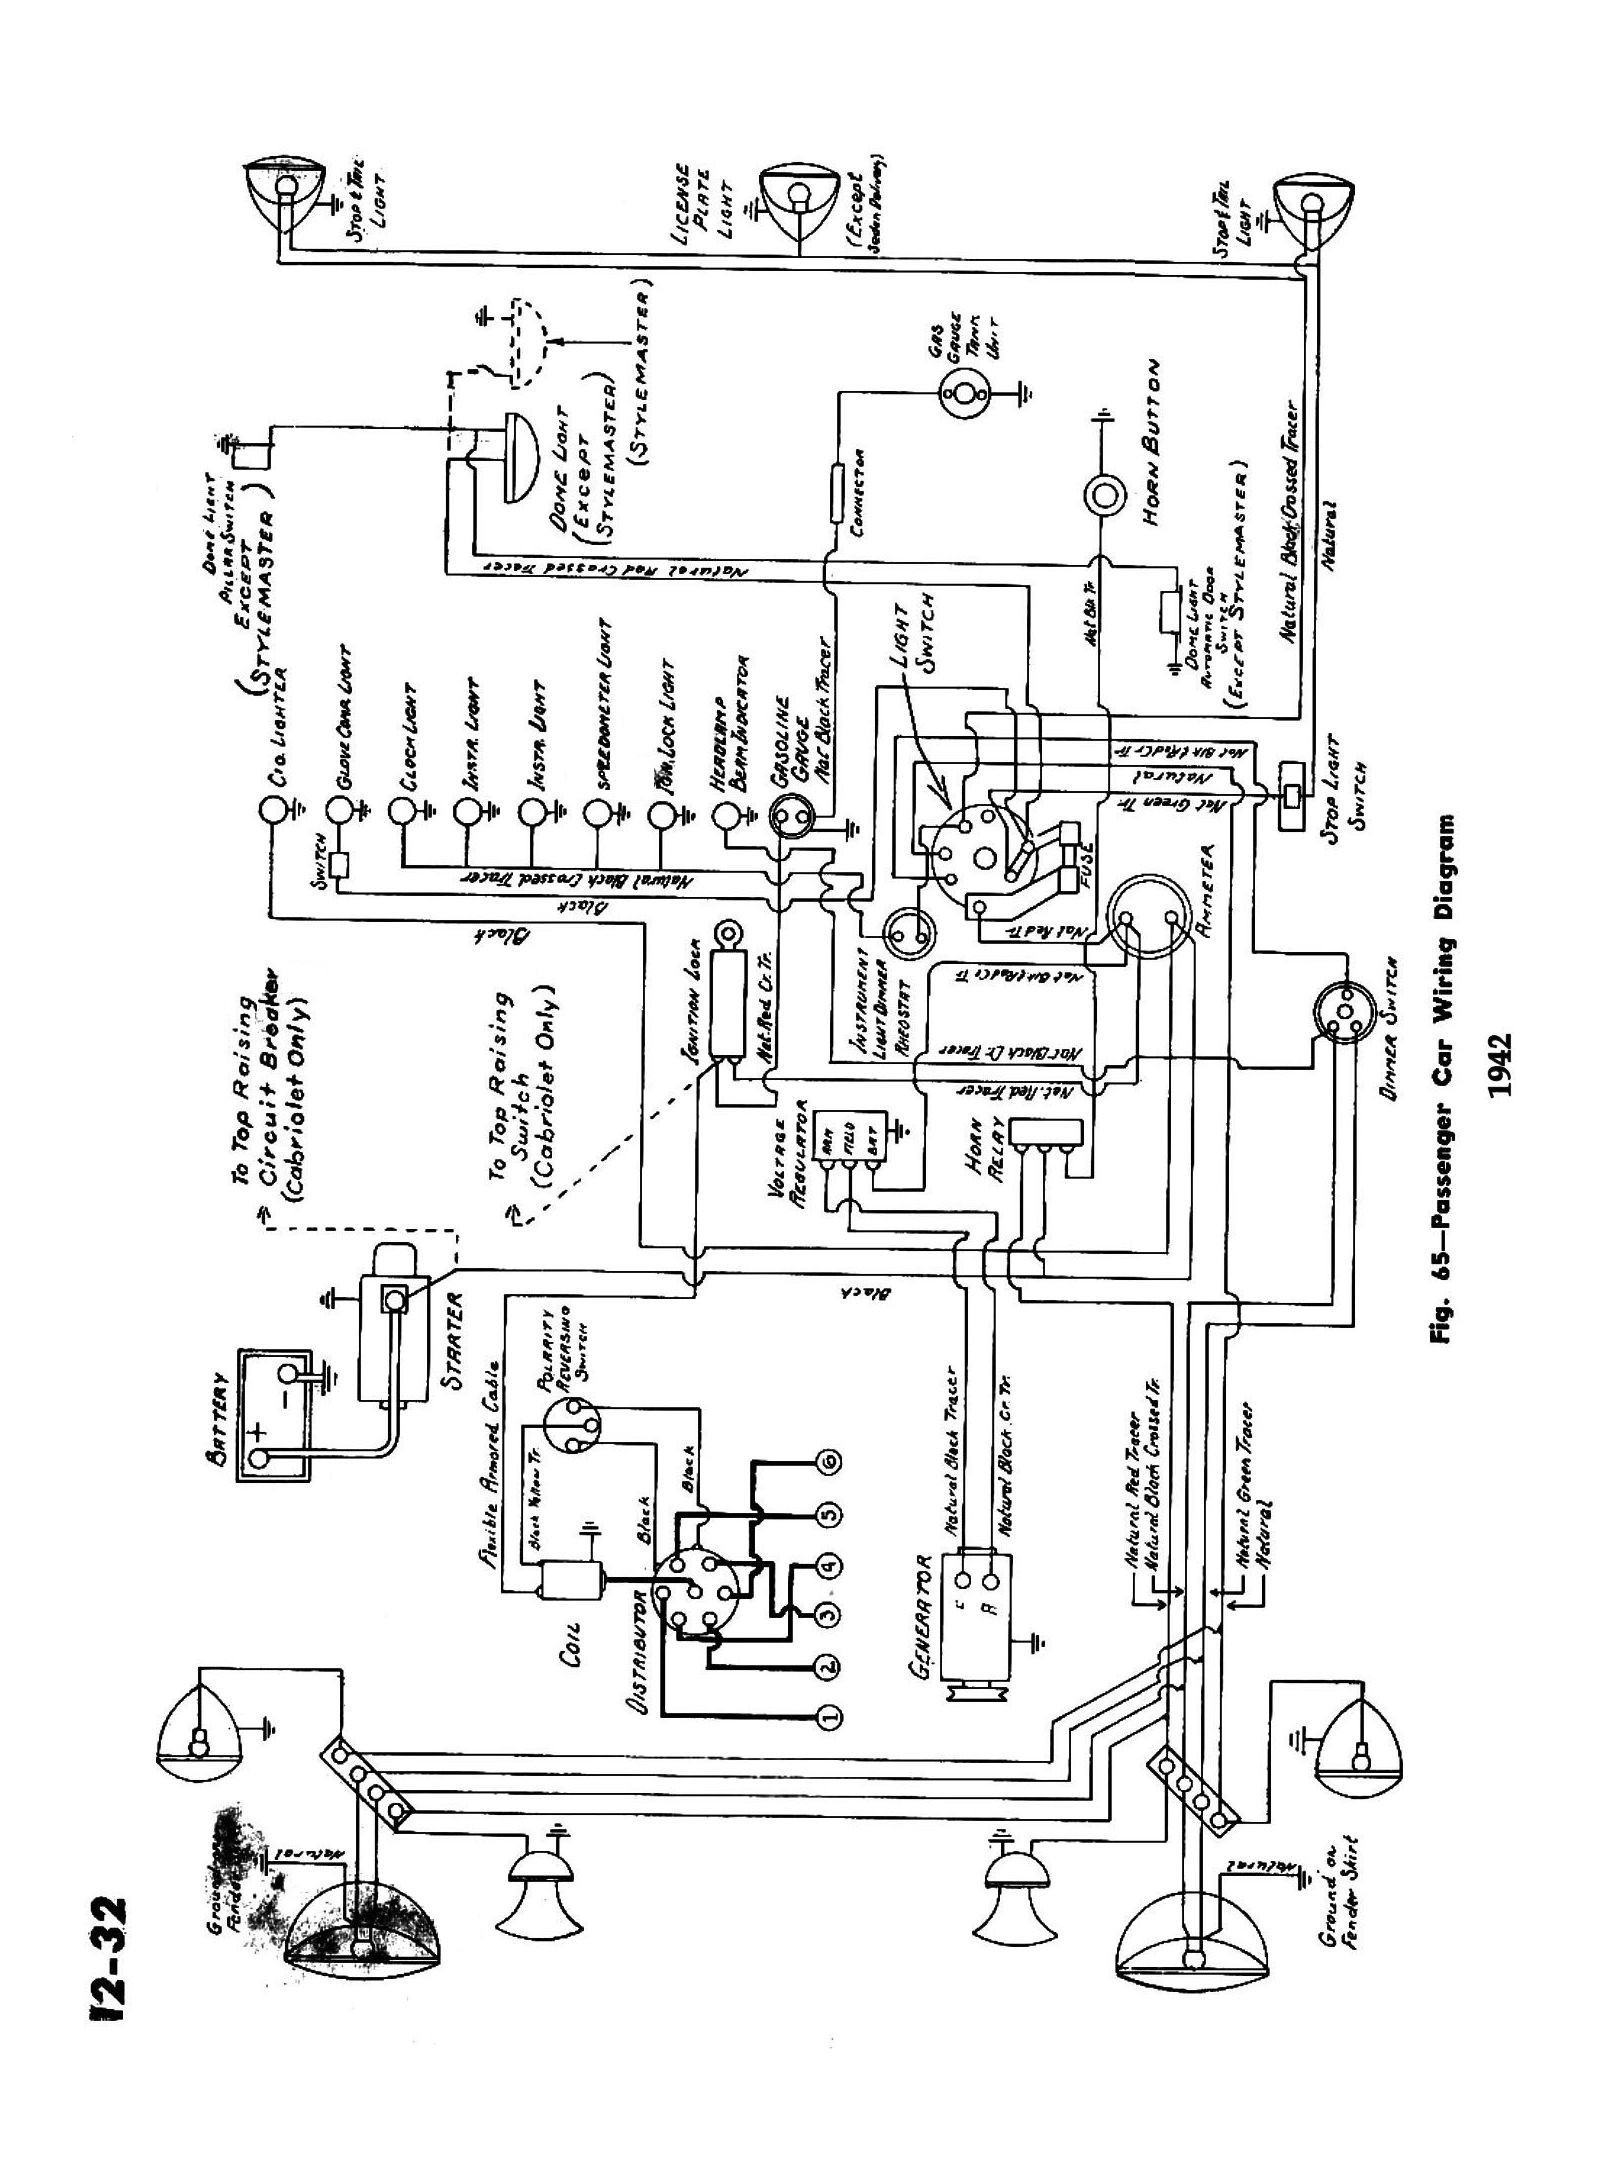 Peterbilt 387 Fuse Panel. Diagrams. Wiring Diagram Images